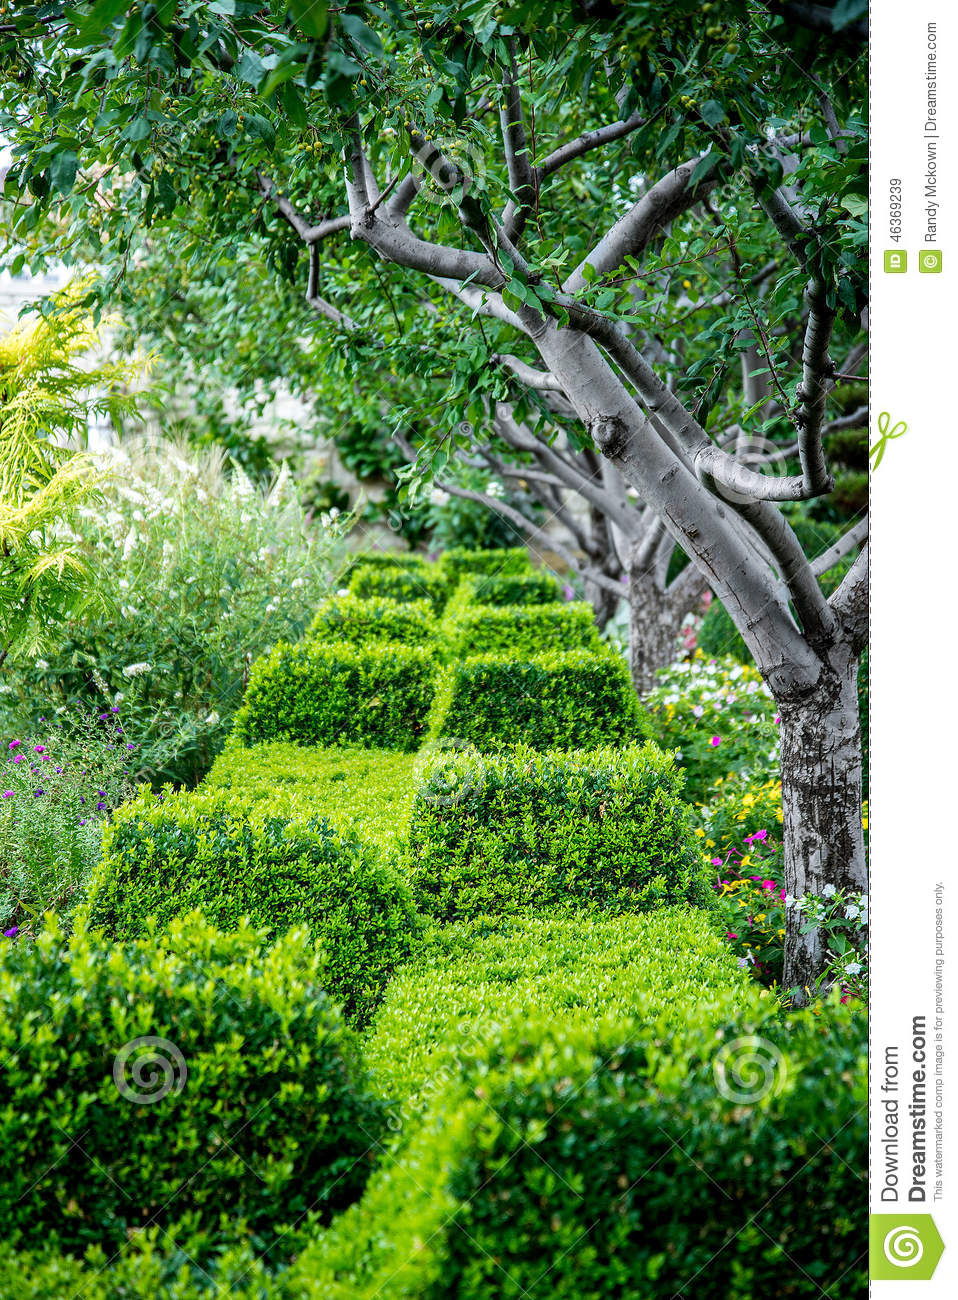 Residential Landscaping Plants : Green bushes shrubs in garden stock photo image